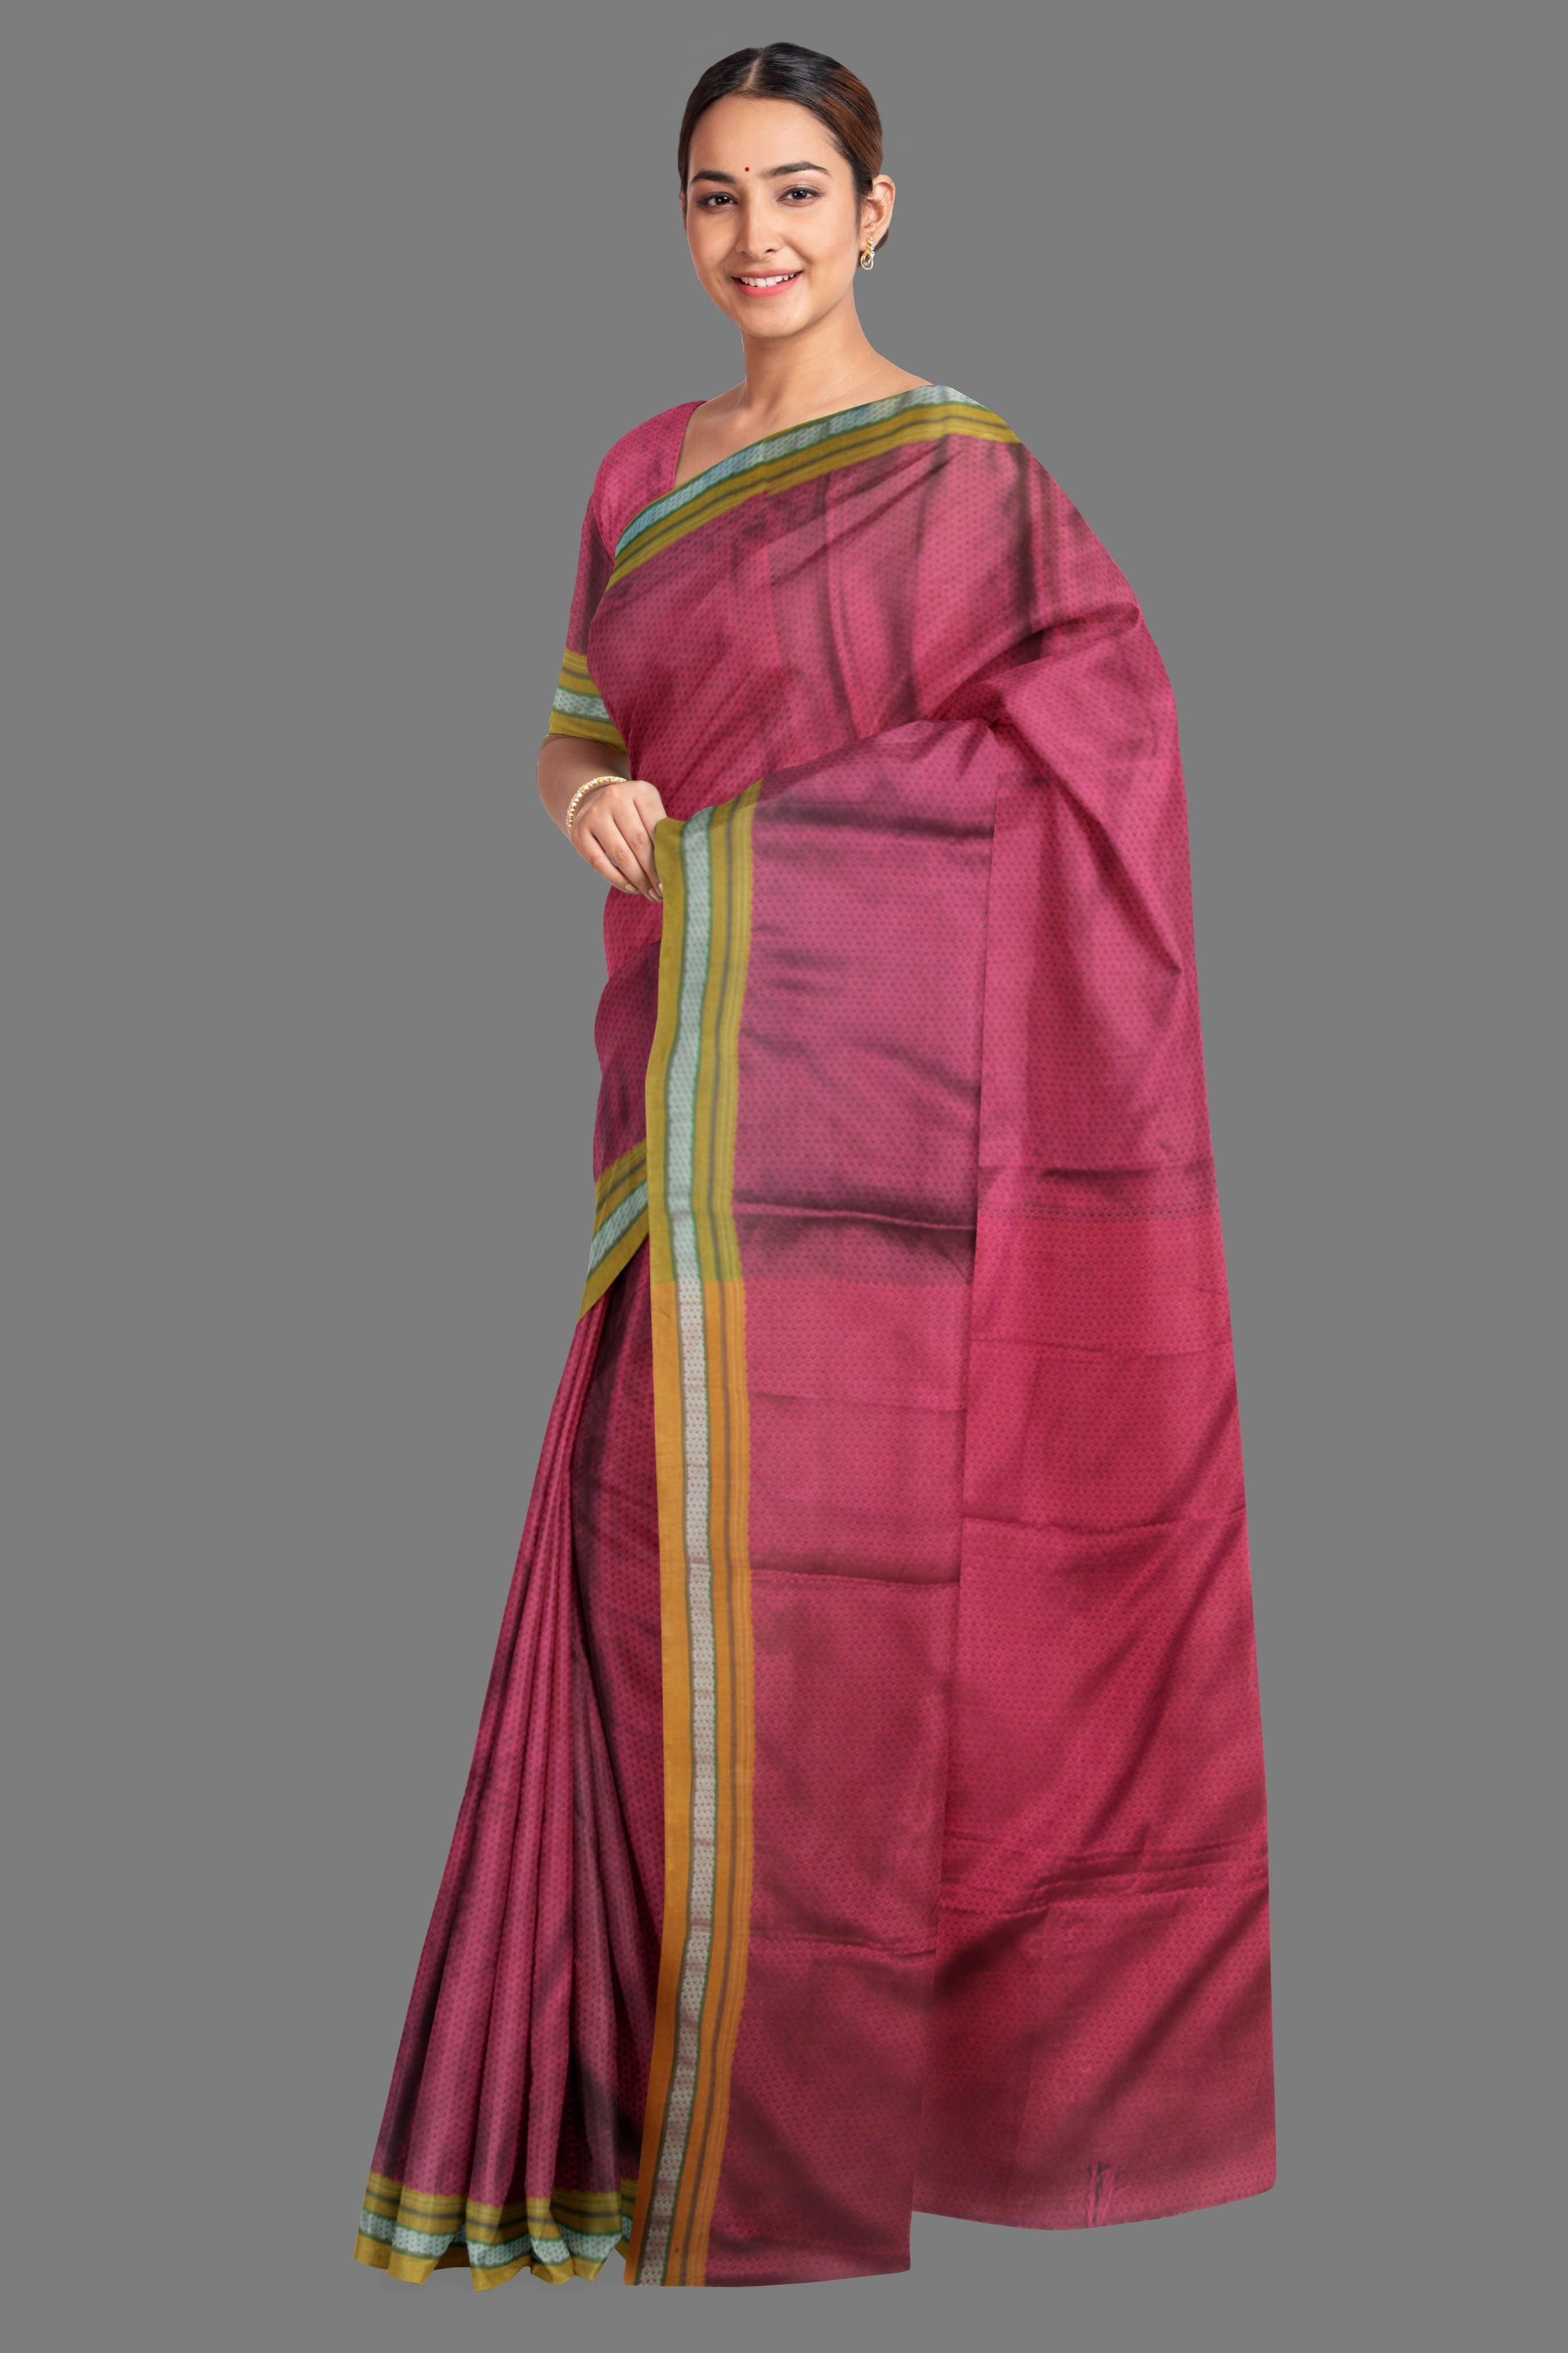 Women's Pink Khunn Saree with Mustard Border